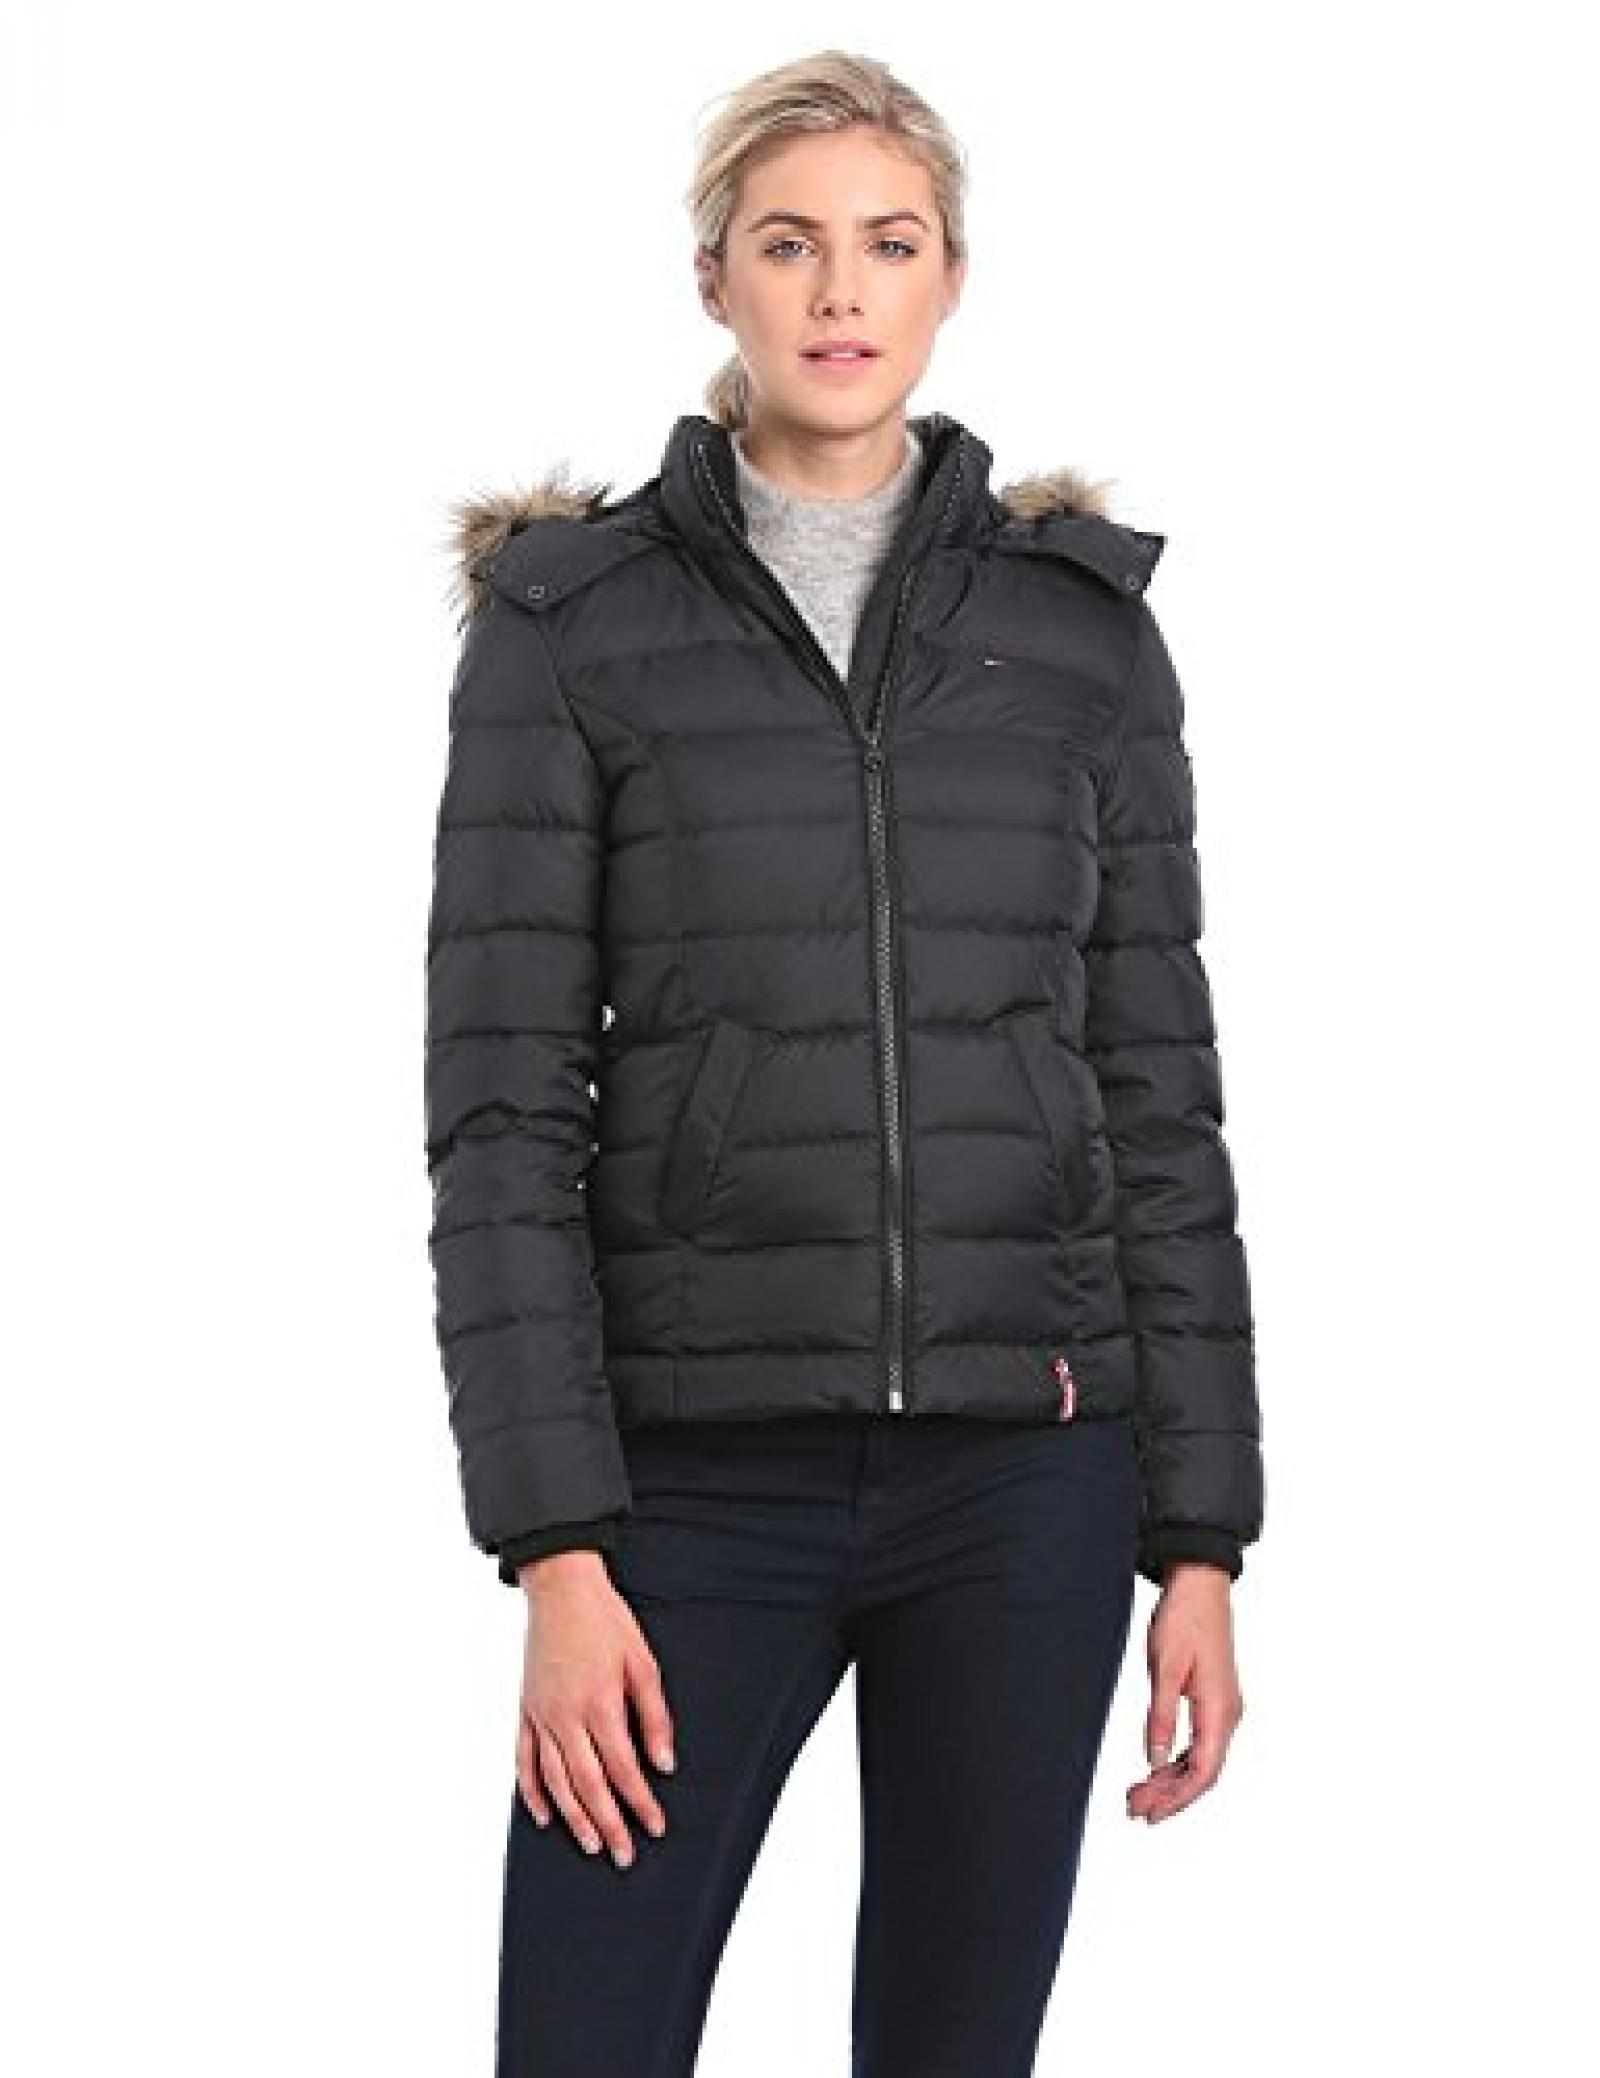 neu tommy hilfiger jacke damen martina down bomber 1657640590. Black Bedroom Furniture Sets. Home Design Ideas